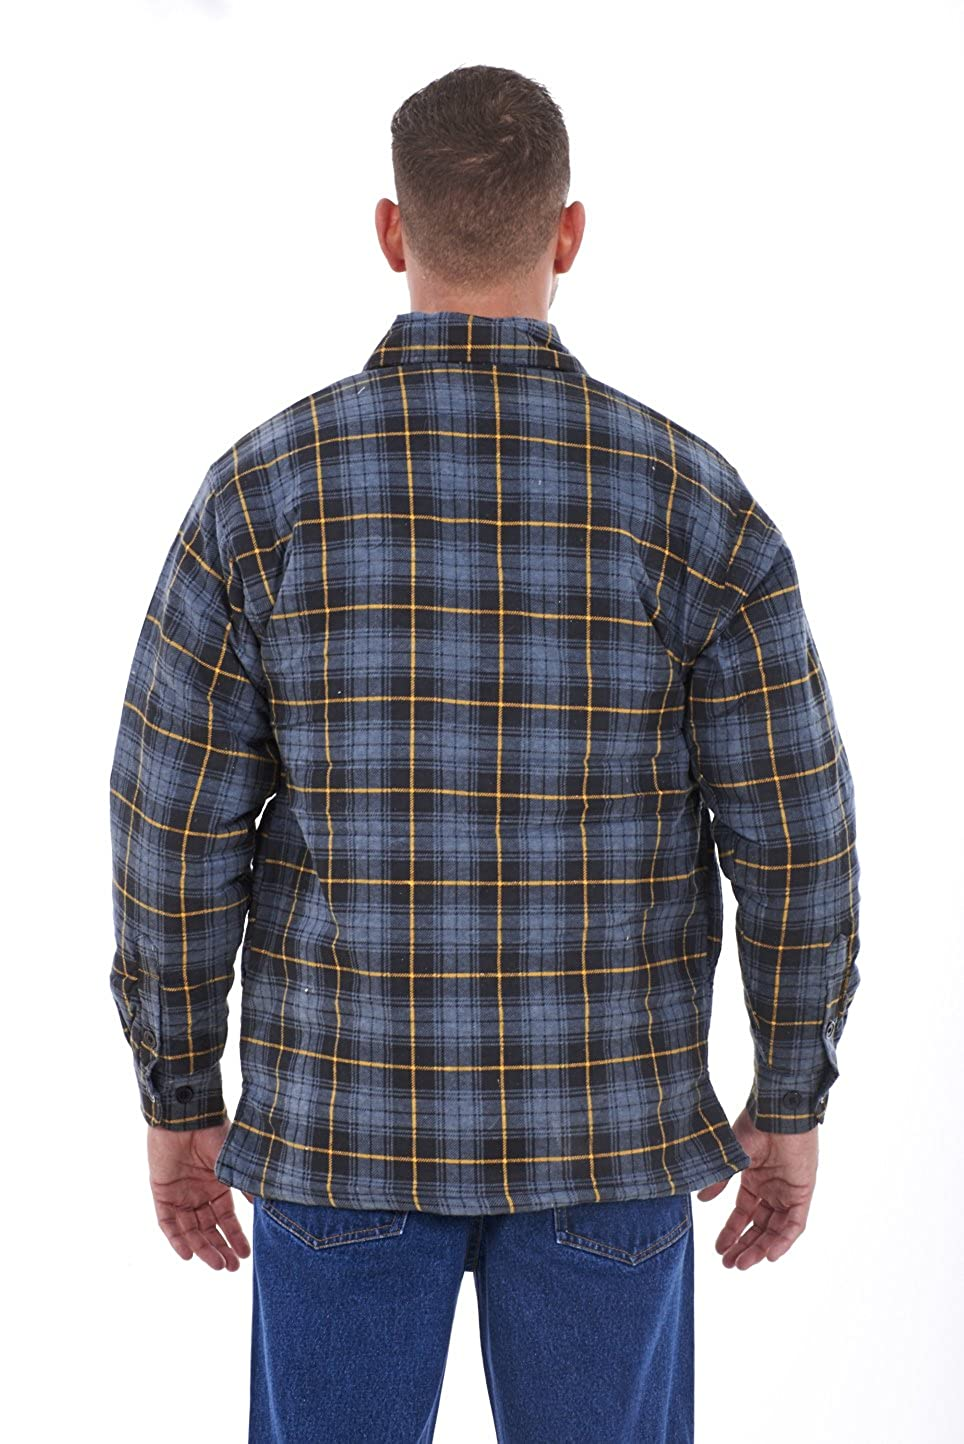 great variety styles attractive & durable beautiful in colour mens padded work shirts quilted cotton lumberjack shirt top coats jackets M  to XXL